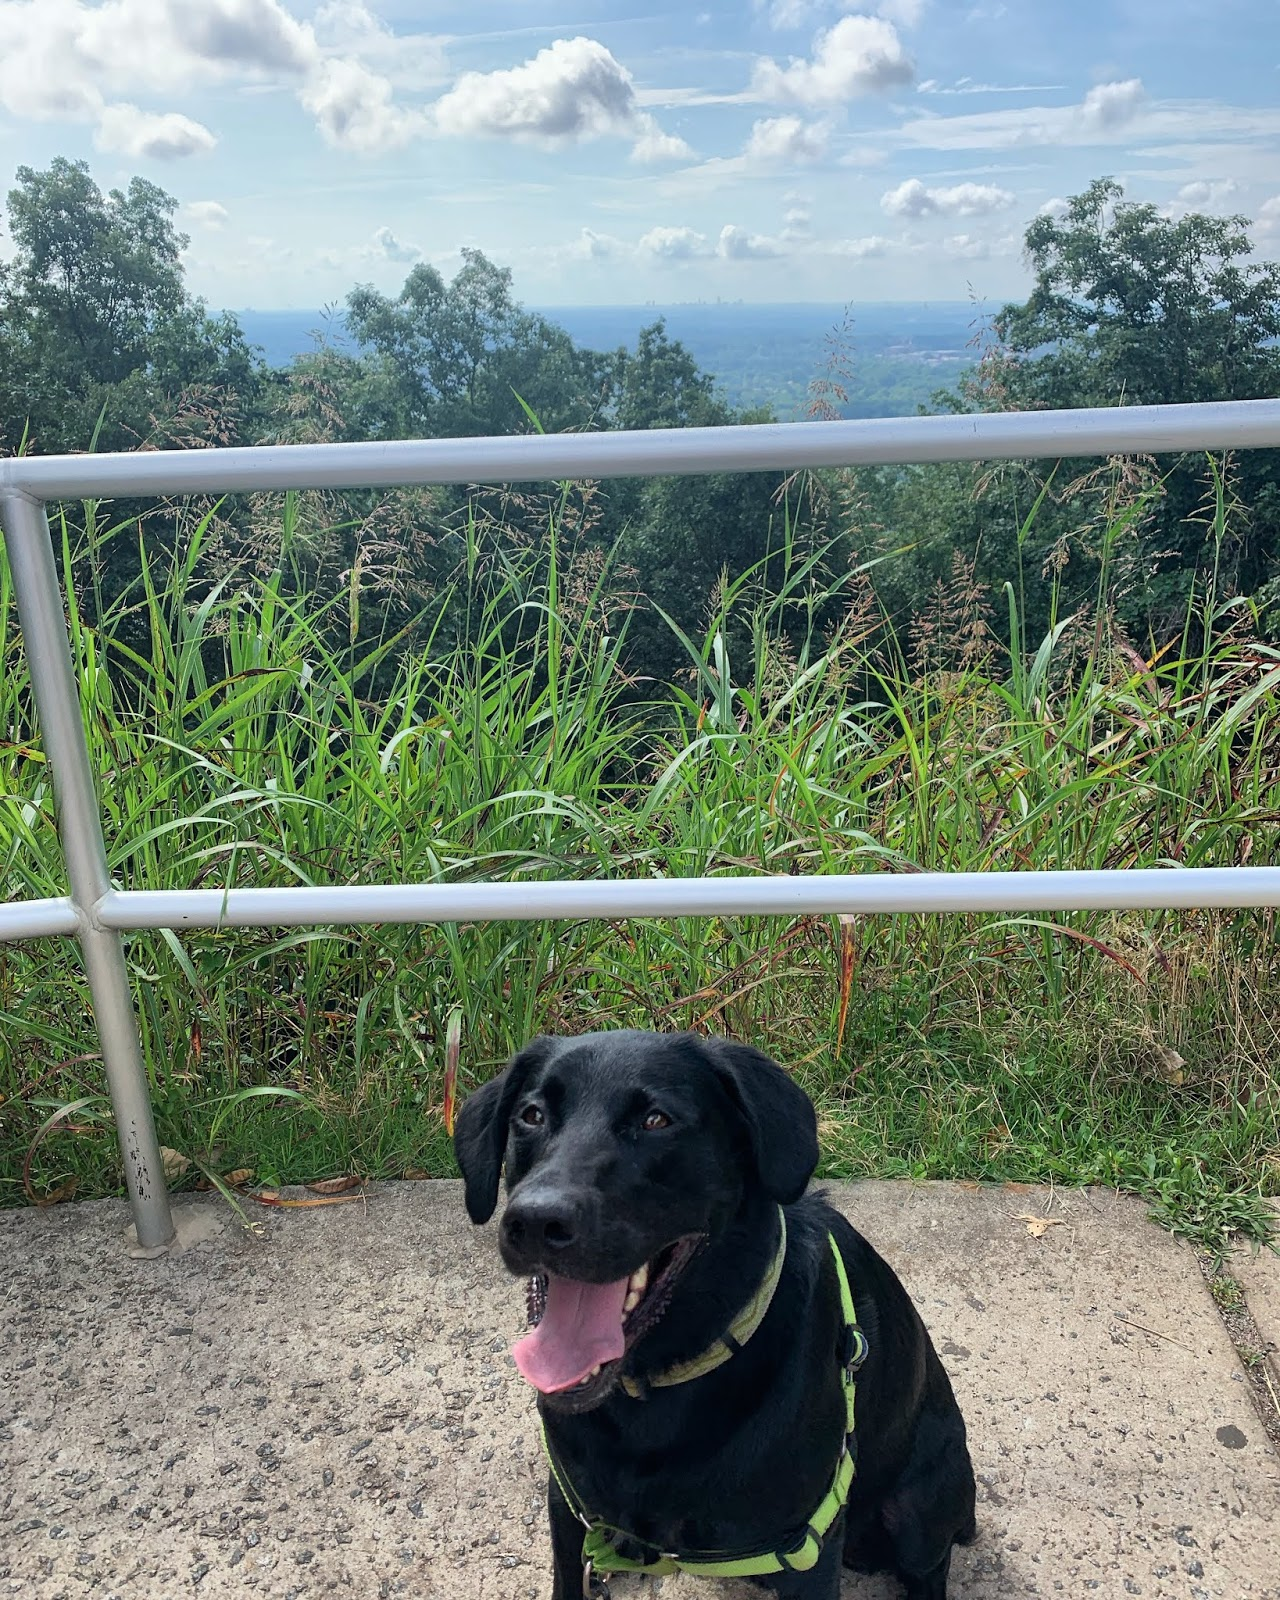 A black lab smiling with the Atlanta skyline in the distance behind him